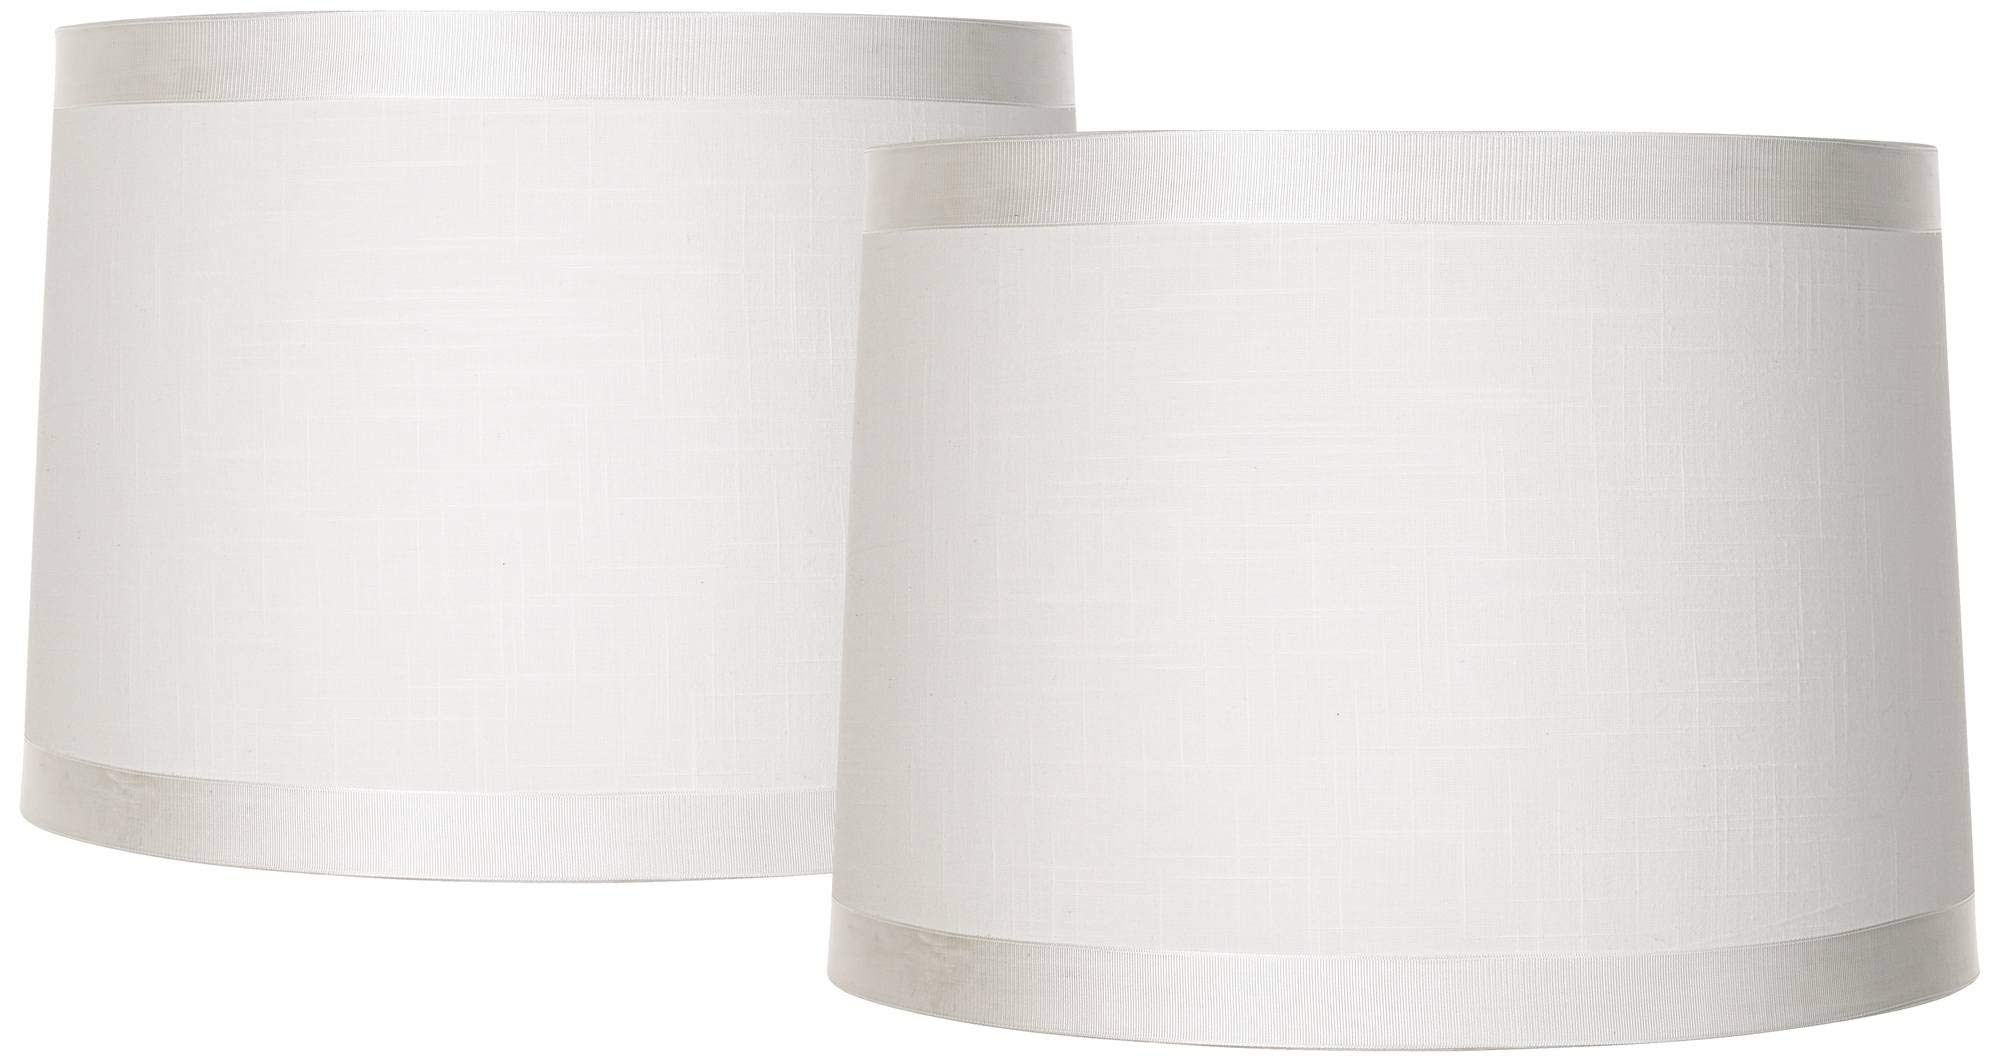 White Fabric Set of 2 Drum Lamp Shades 13x14x10 (Spider) - Brentwood